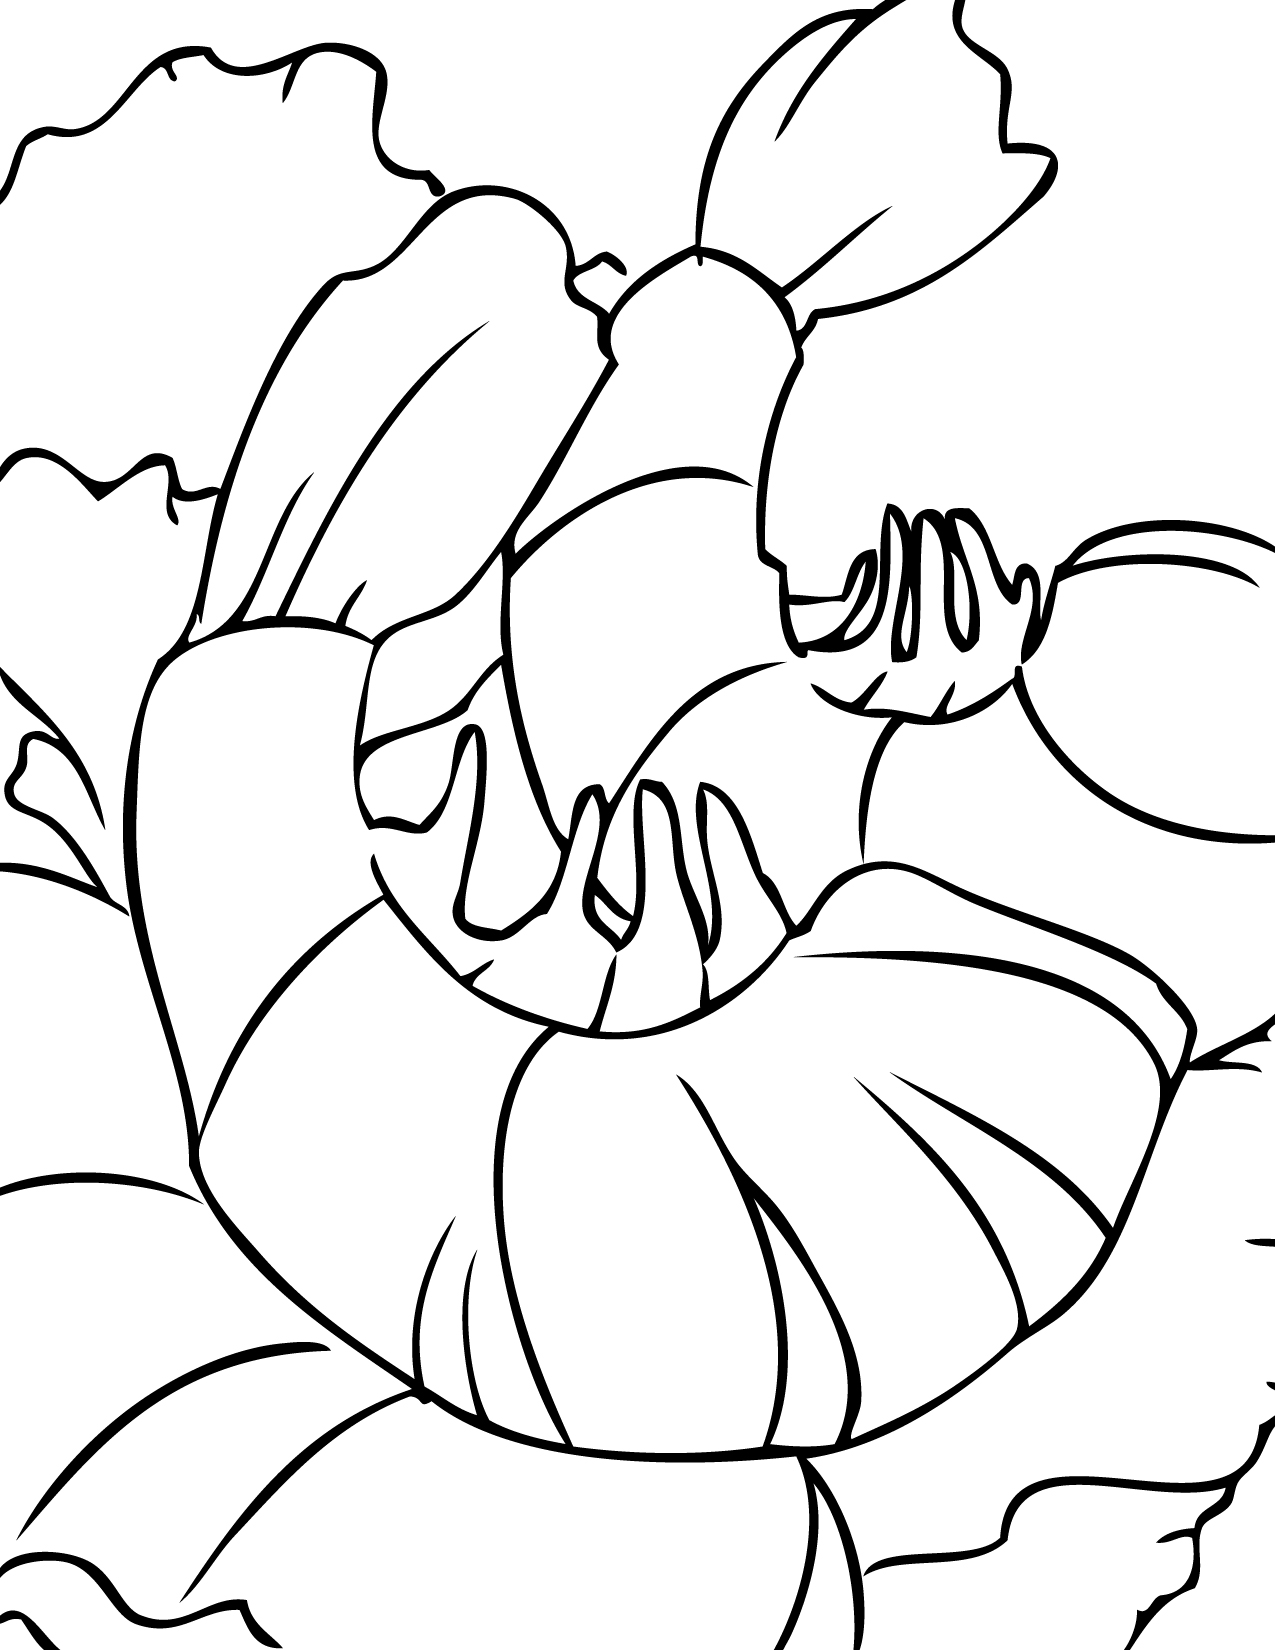 seafood coloring pages - photo#12